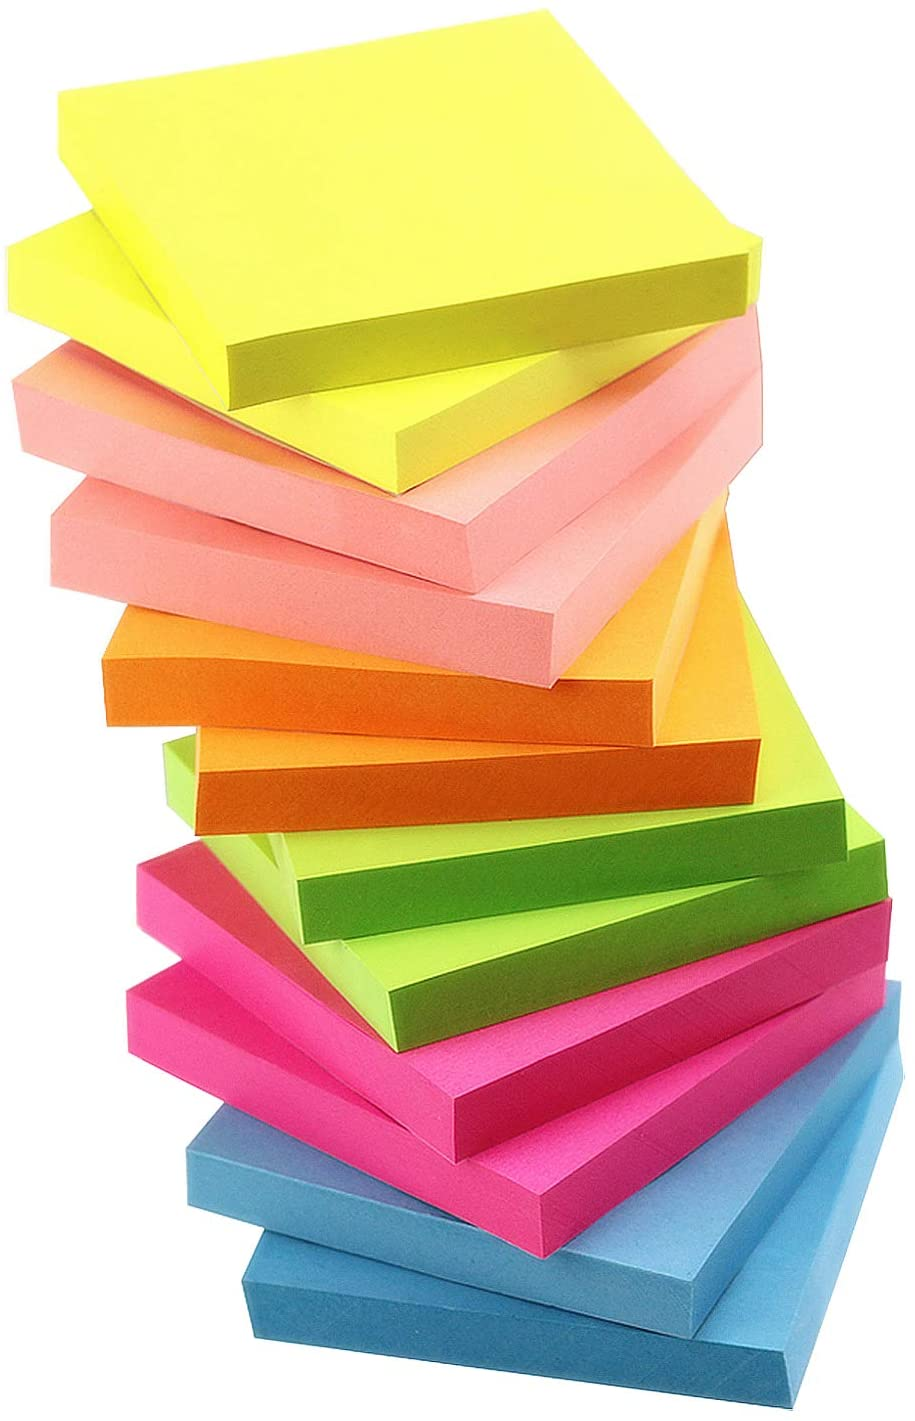 Quality Improved Early Buy 6 Bright Color Self-Stick Notes Sticky Notes 12 Pads//Pack 100 Sheets//Pad Sticky Notes 3 X 3 Inches Box Packing